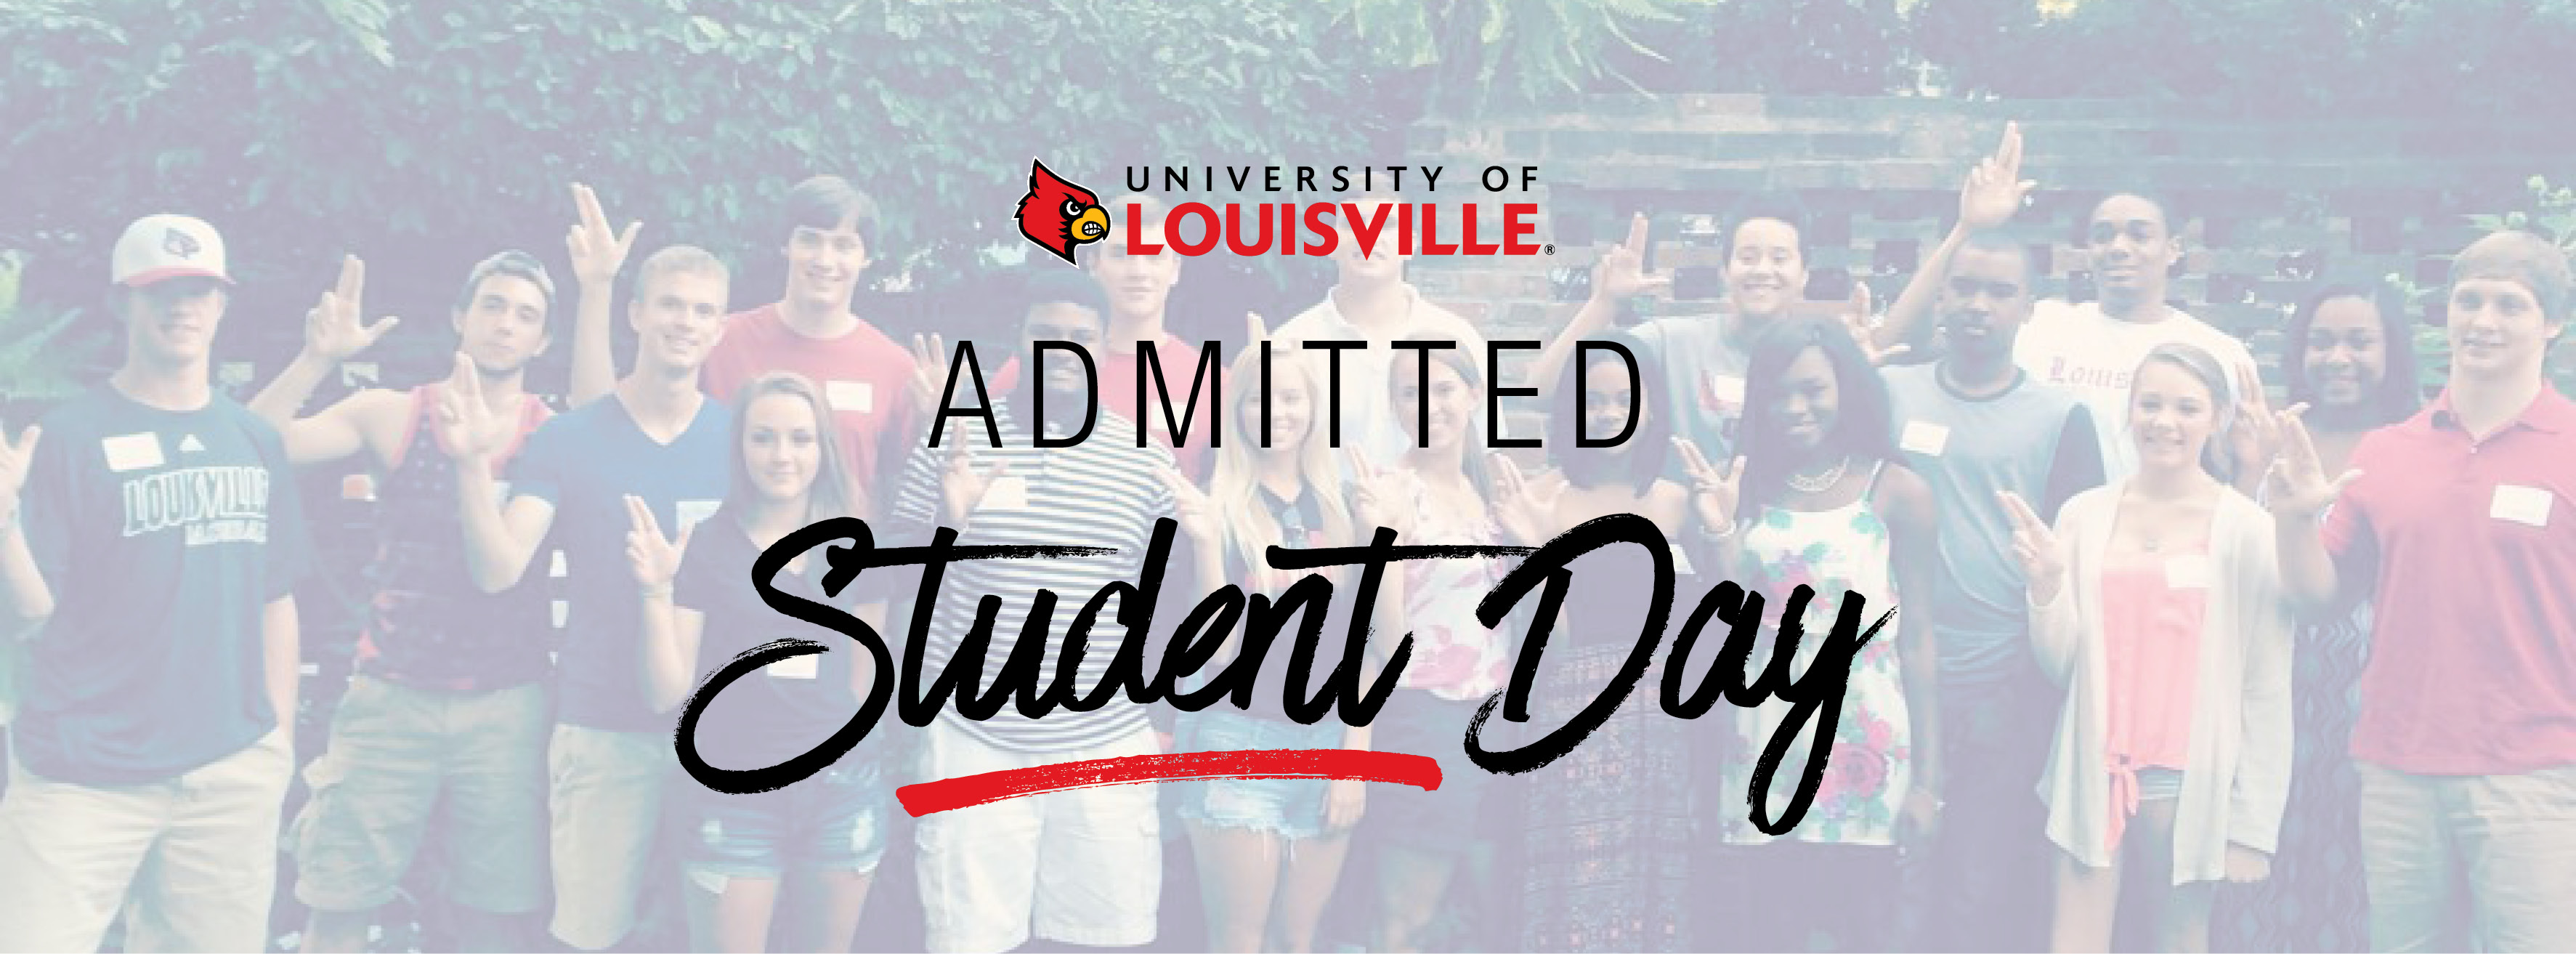 Admitted Student Day: March 24, 2018